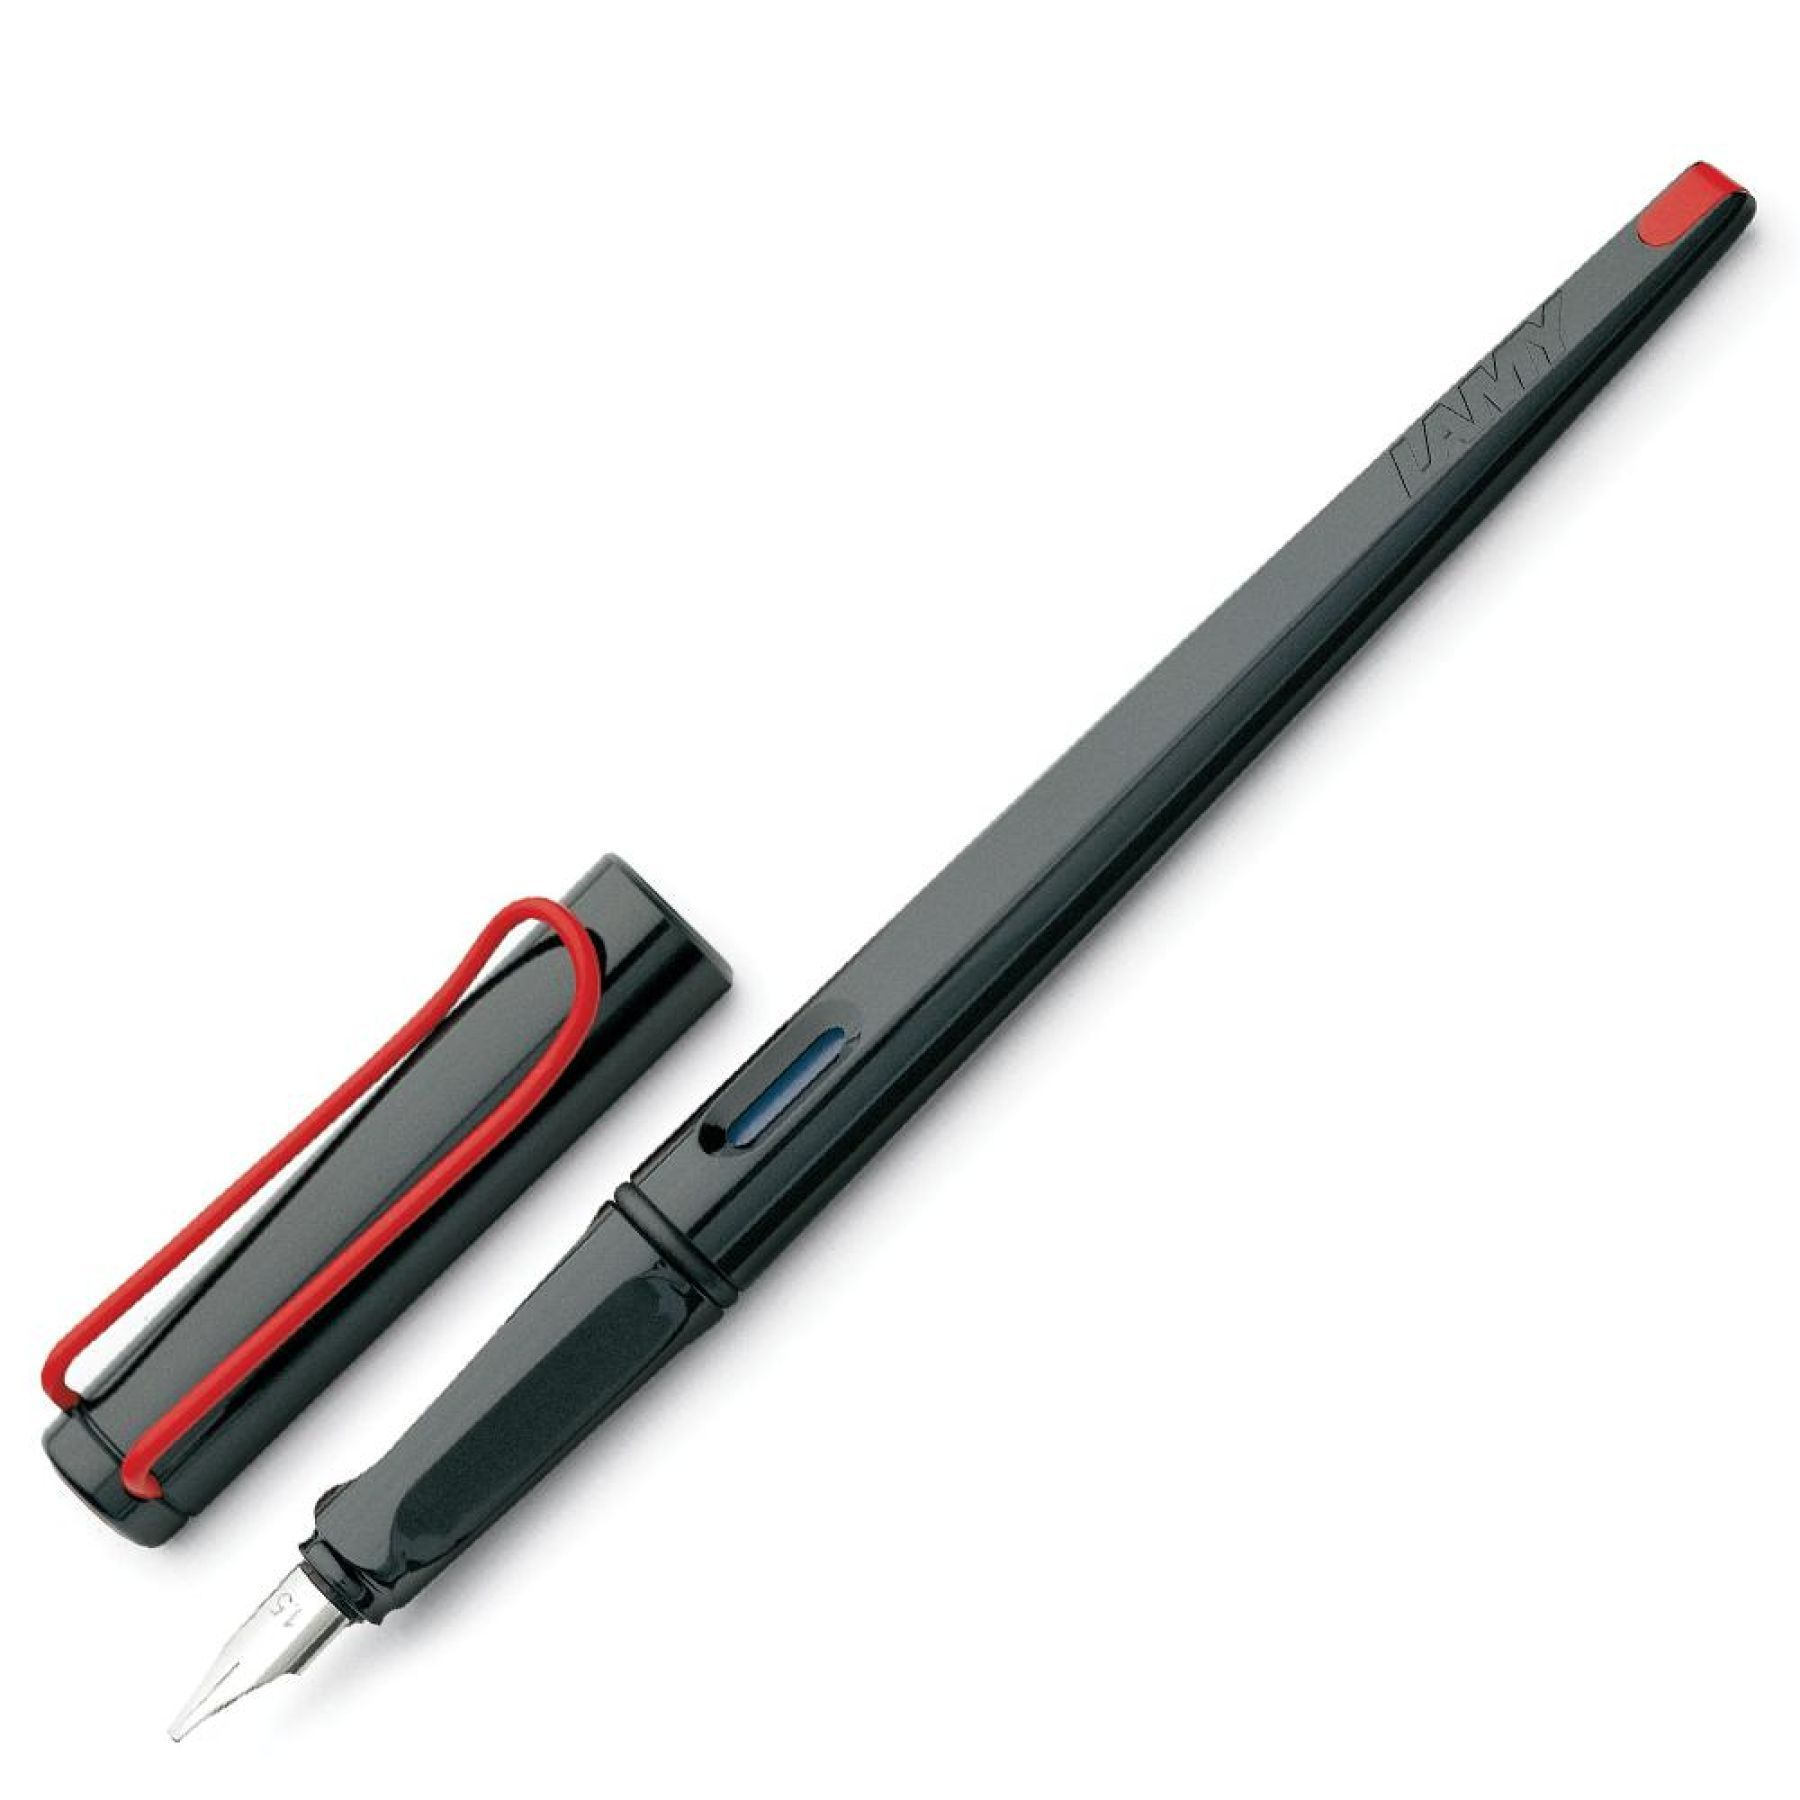 Lamy Joy Calligraphy Fountain Pen In Shiny Black With Red